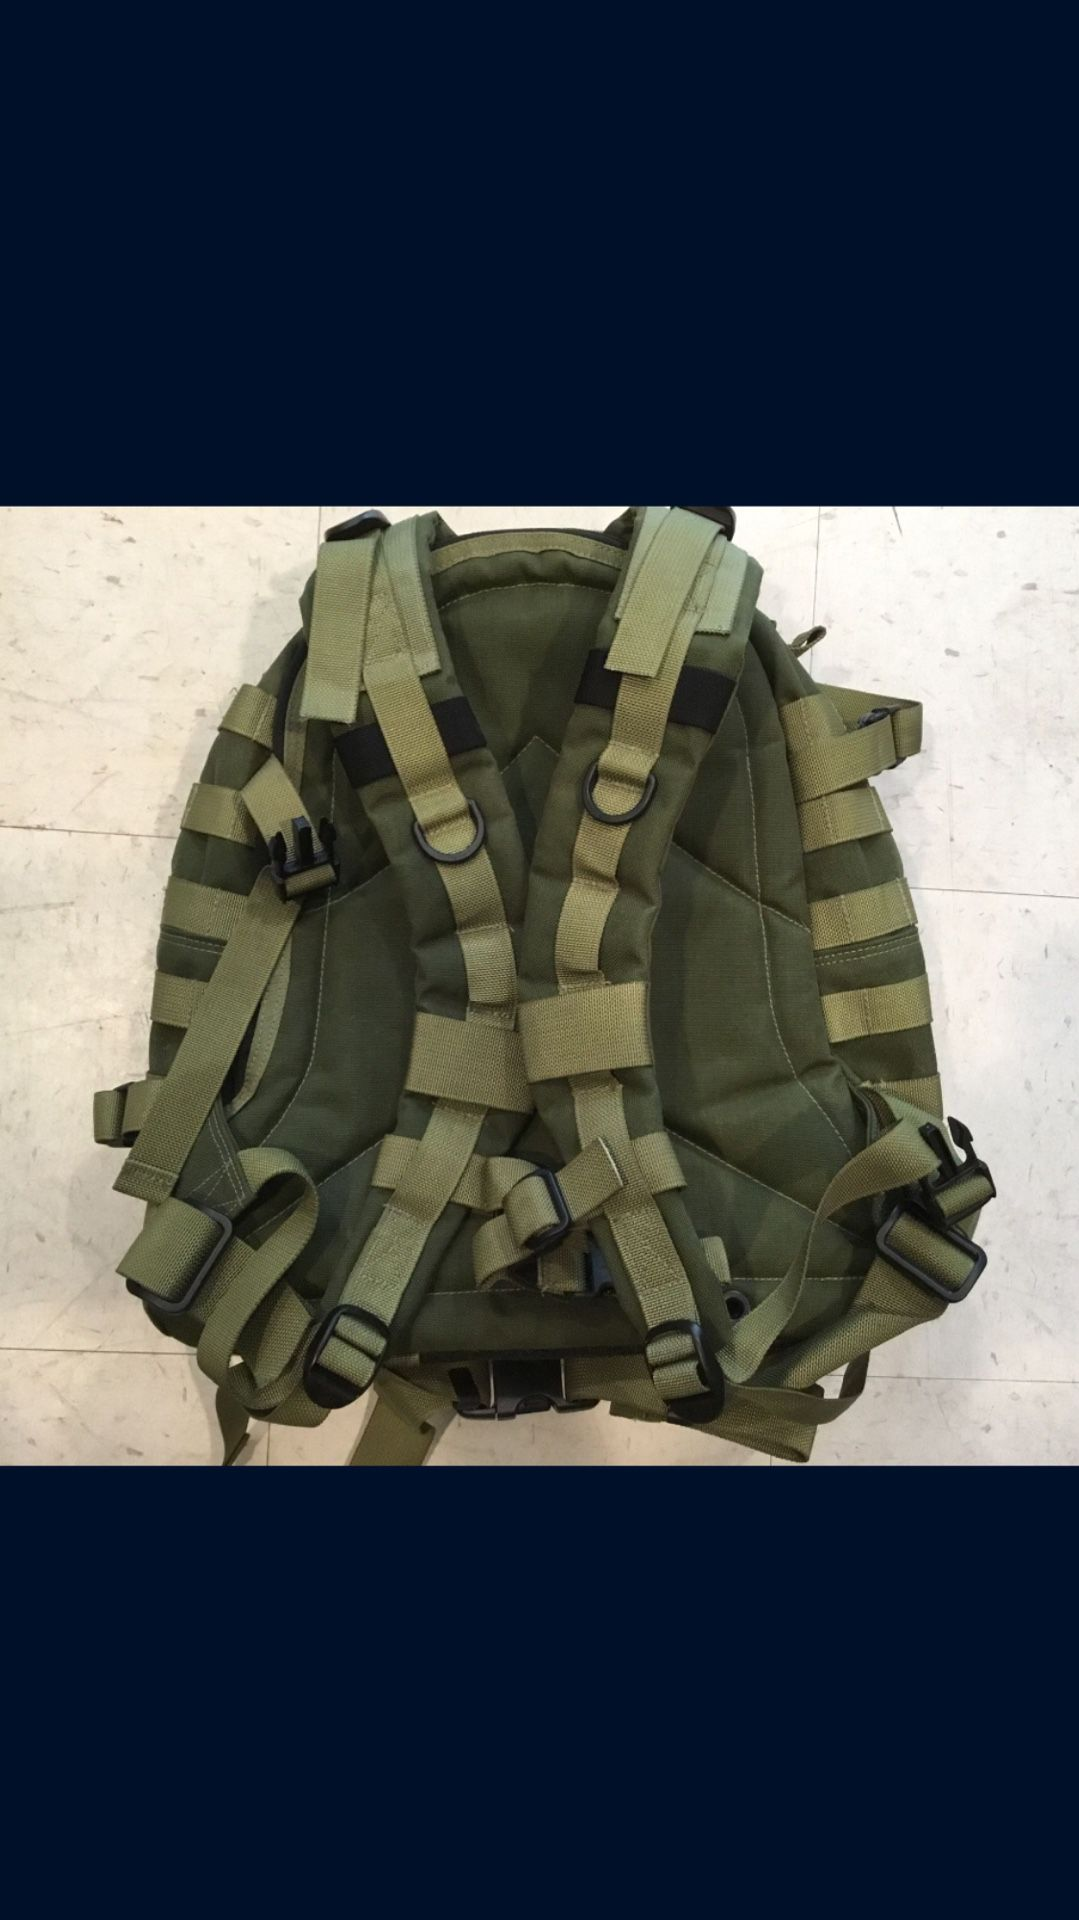 Maxpedition Tactical Backpack